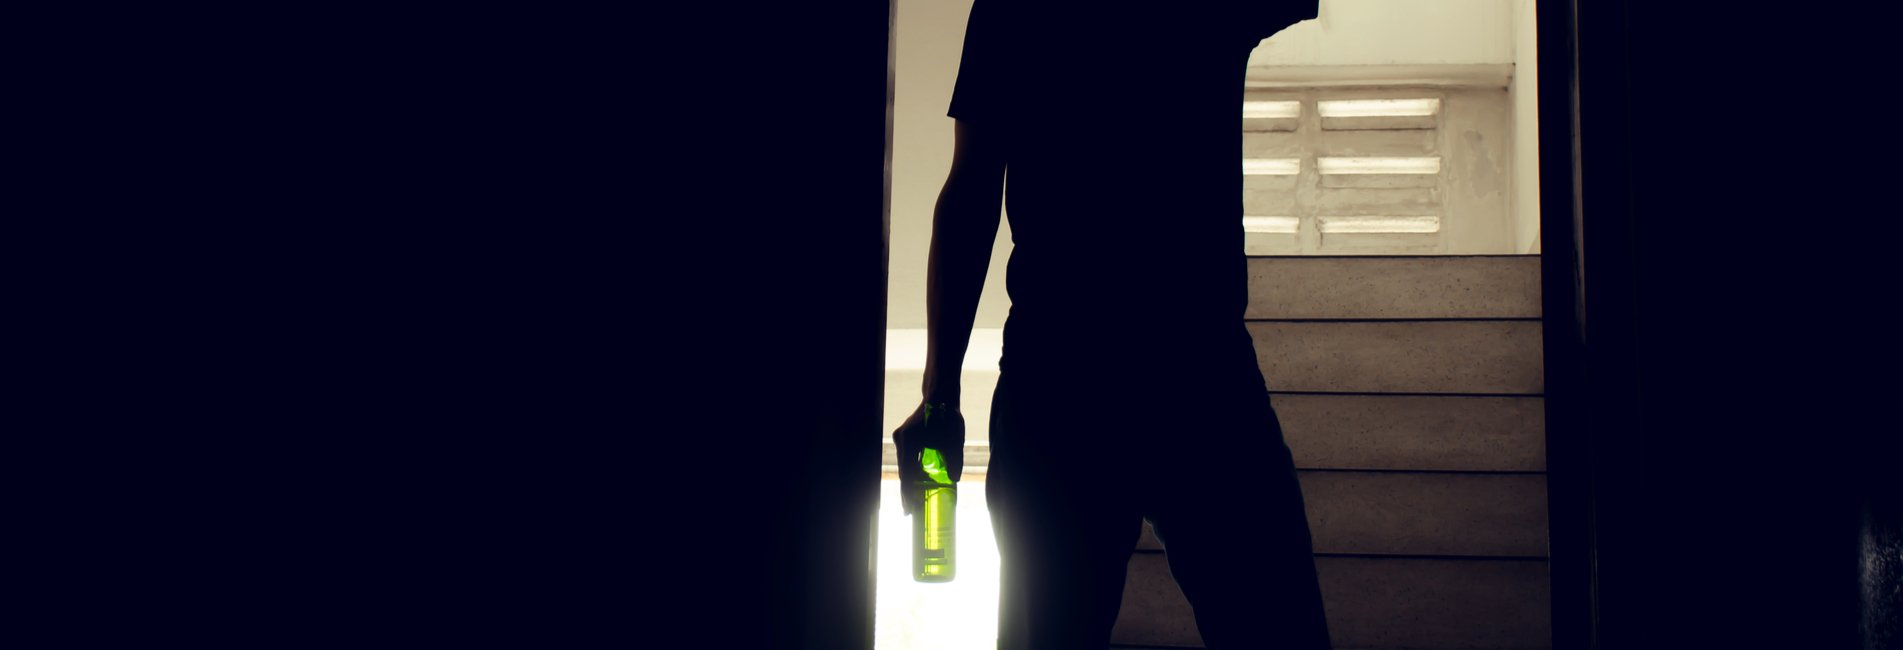 Do You Have an Addictive Personality Resurgence – A man struggling with alcohol abuse could find help at a treatment center to get sober.